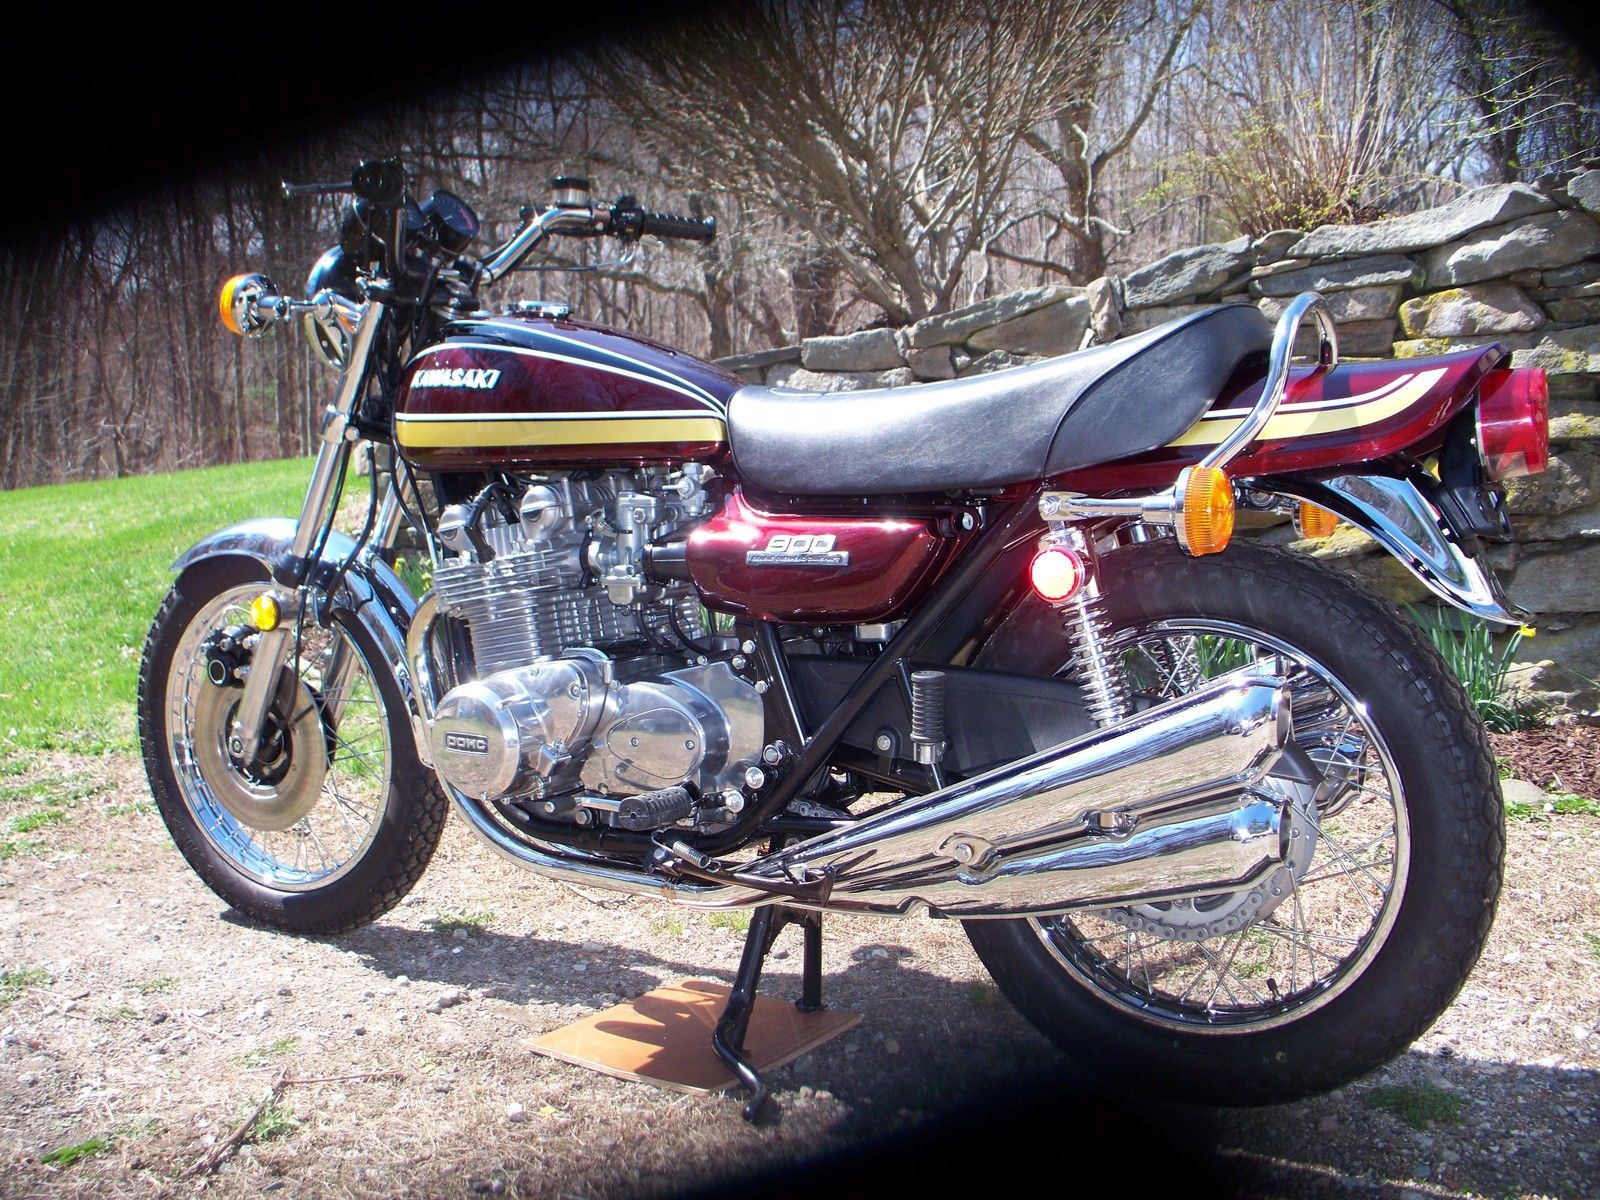 Kawasaki Z1 - 1975 - Frame and Forks, Wheel, Brakes and Tyres.